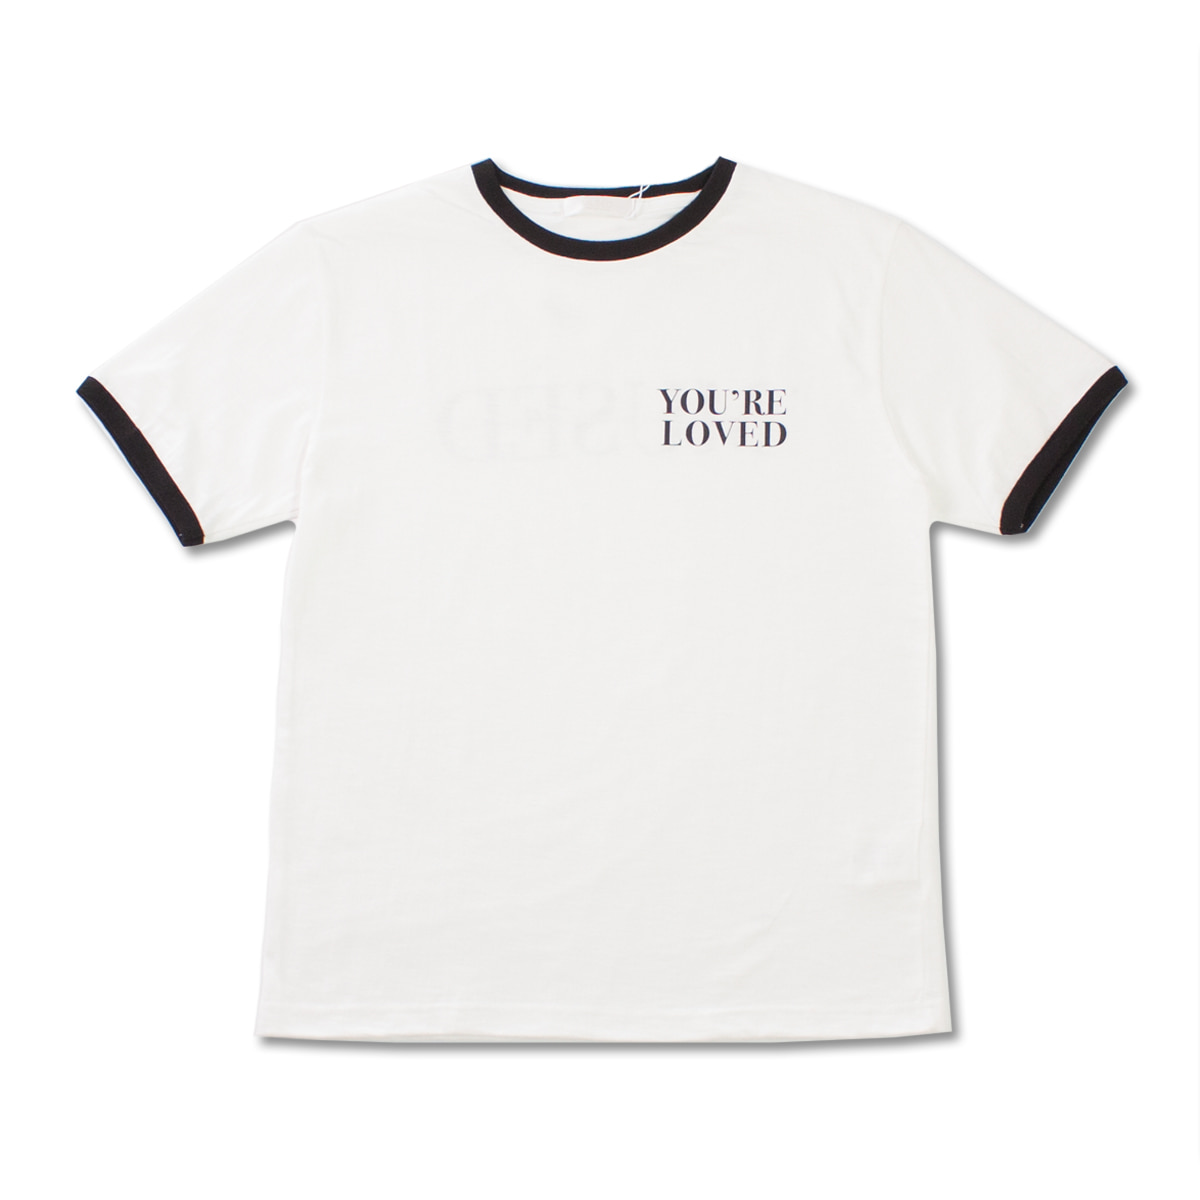 [MUSED] LOVED T-SHIRT 'WH+BLACK RIB'